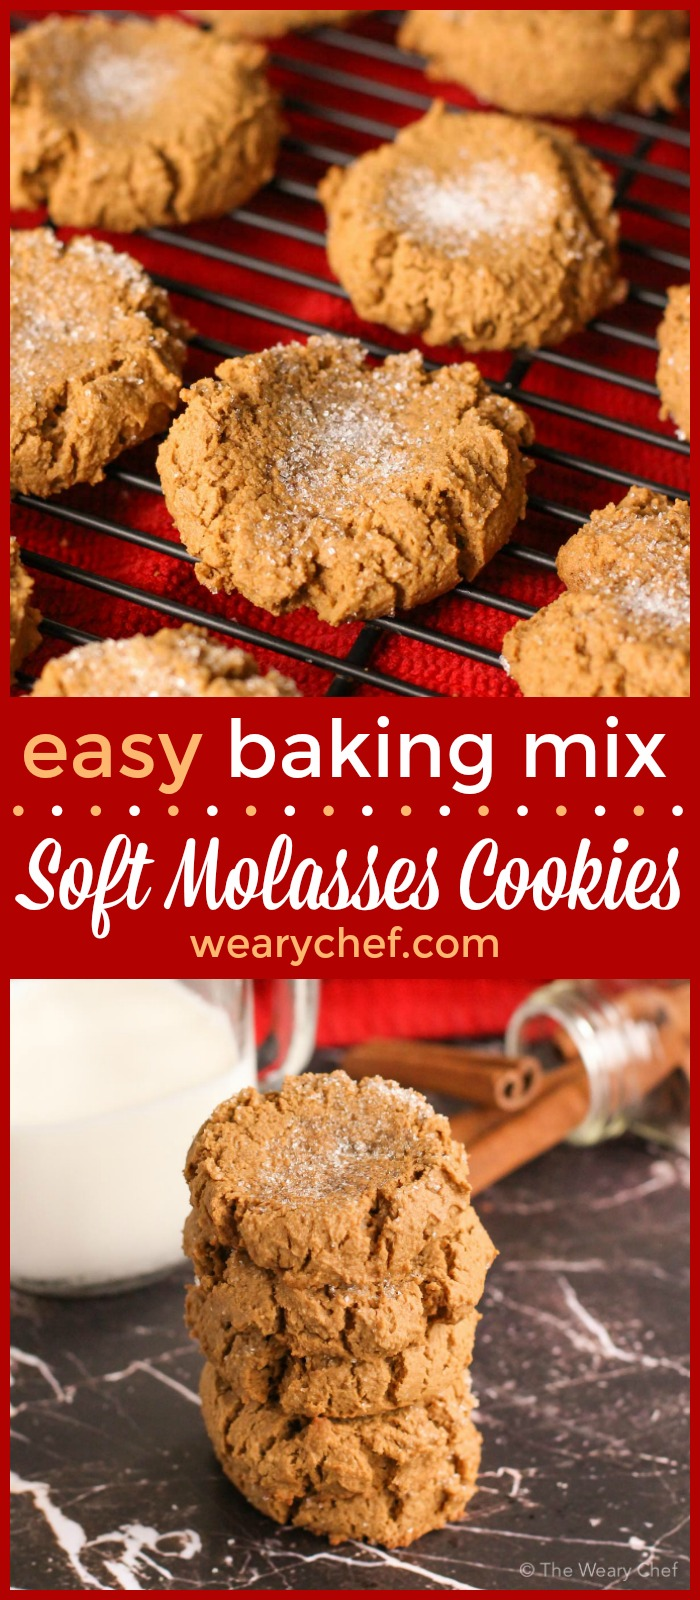 These delicious soft molasses cookies use baking mix as a shortcut. They are perfect for the holidays or an after school treat any time!